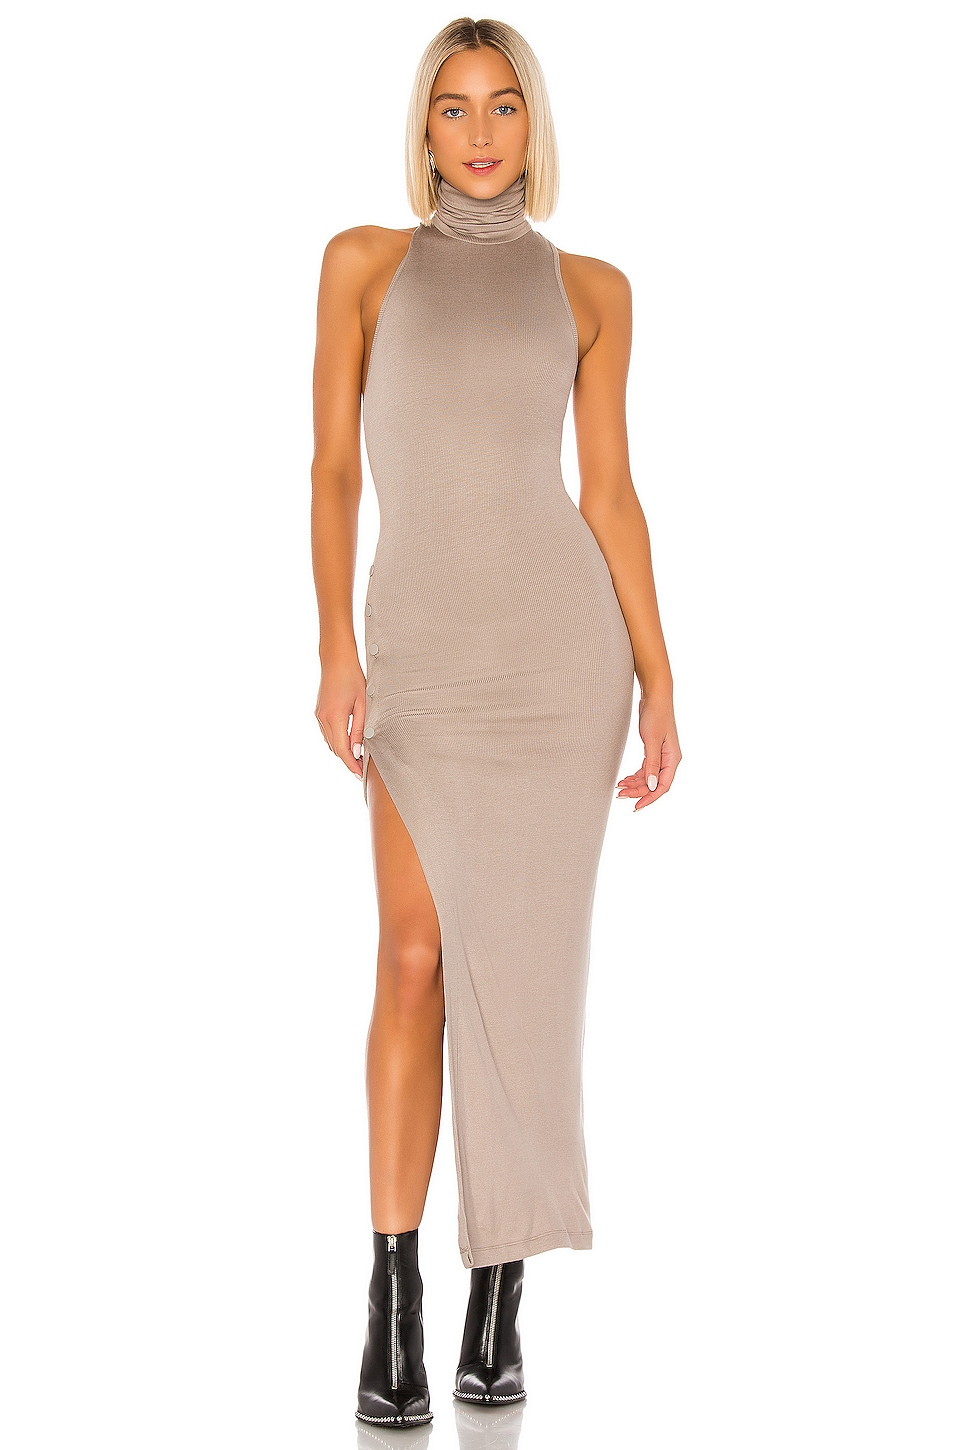 ALIX NYC Orchard Dress in Dove